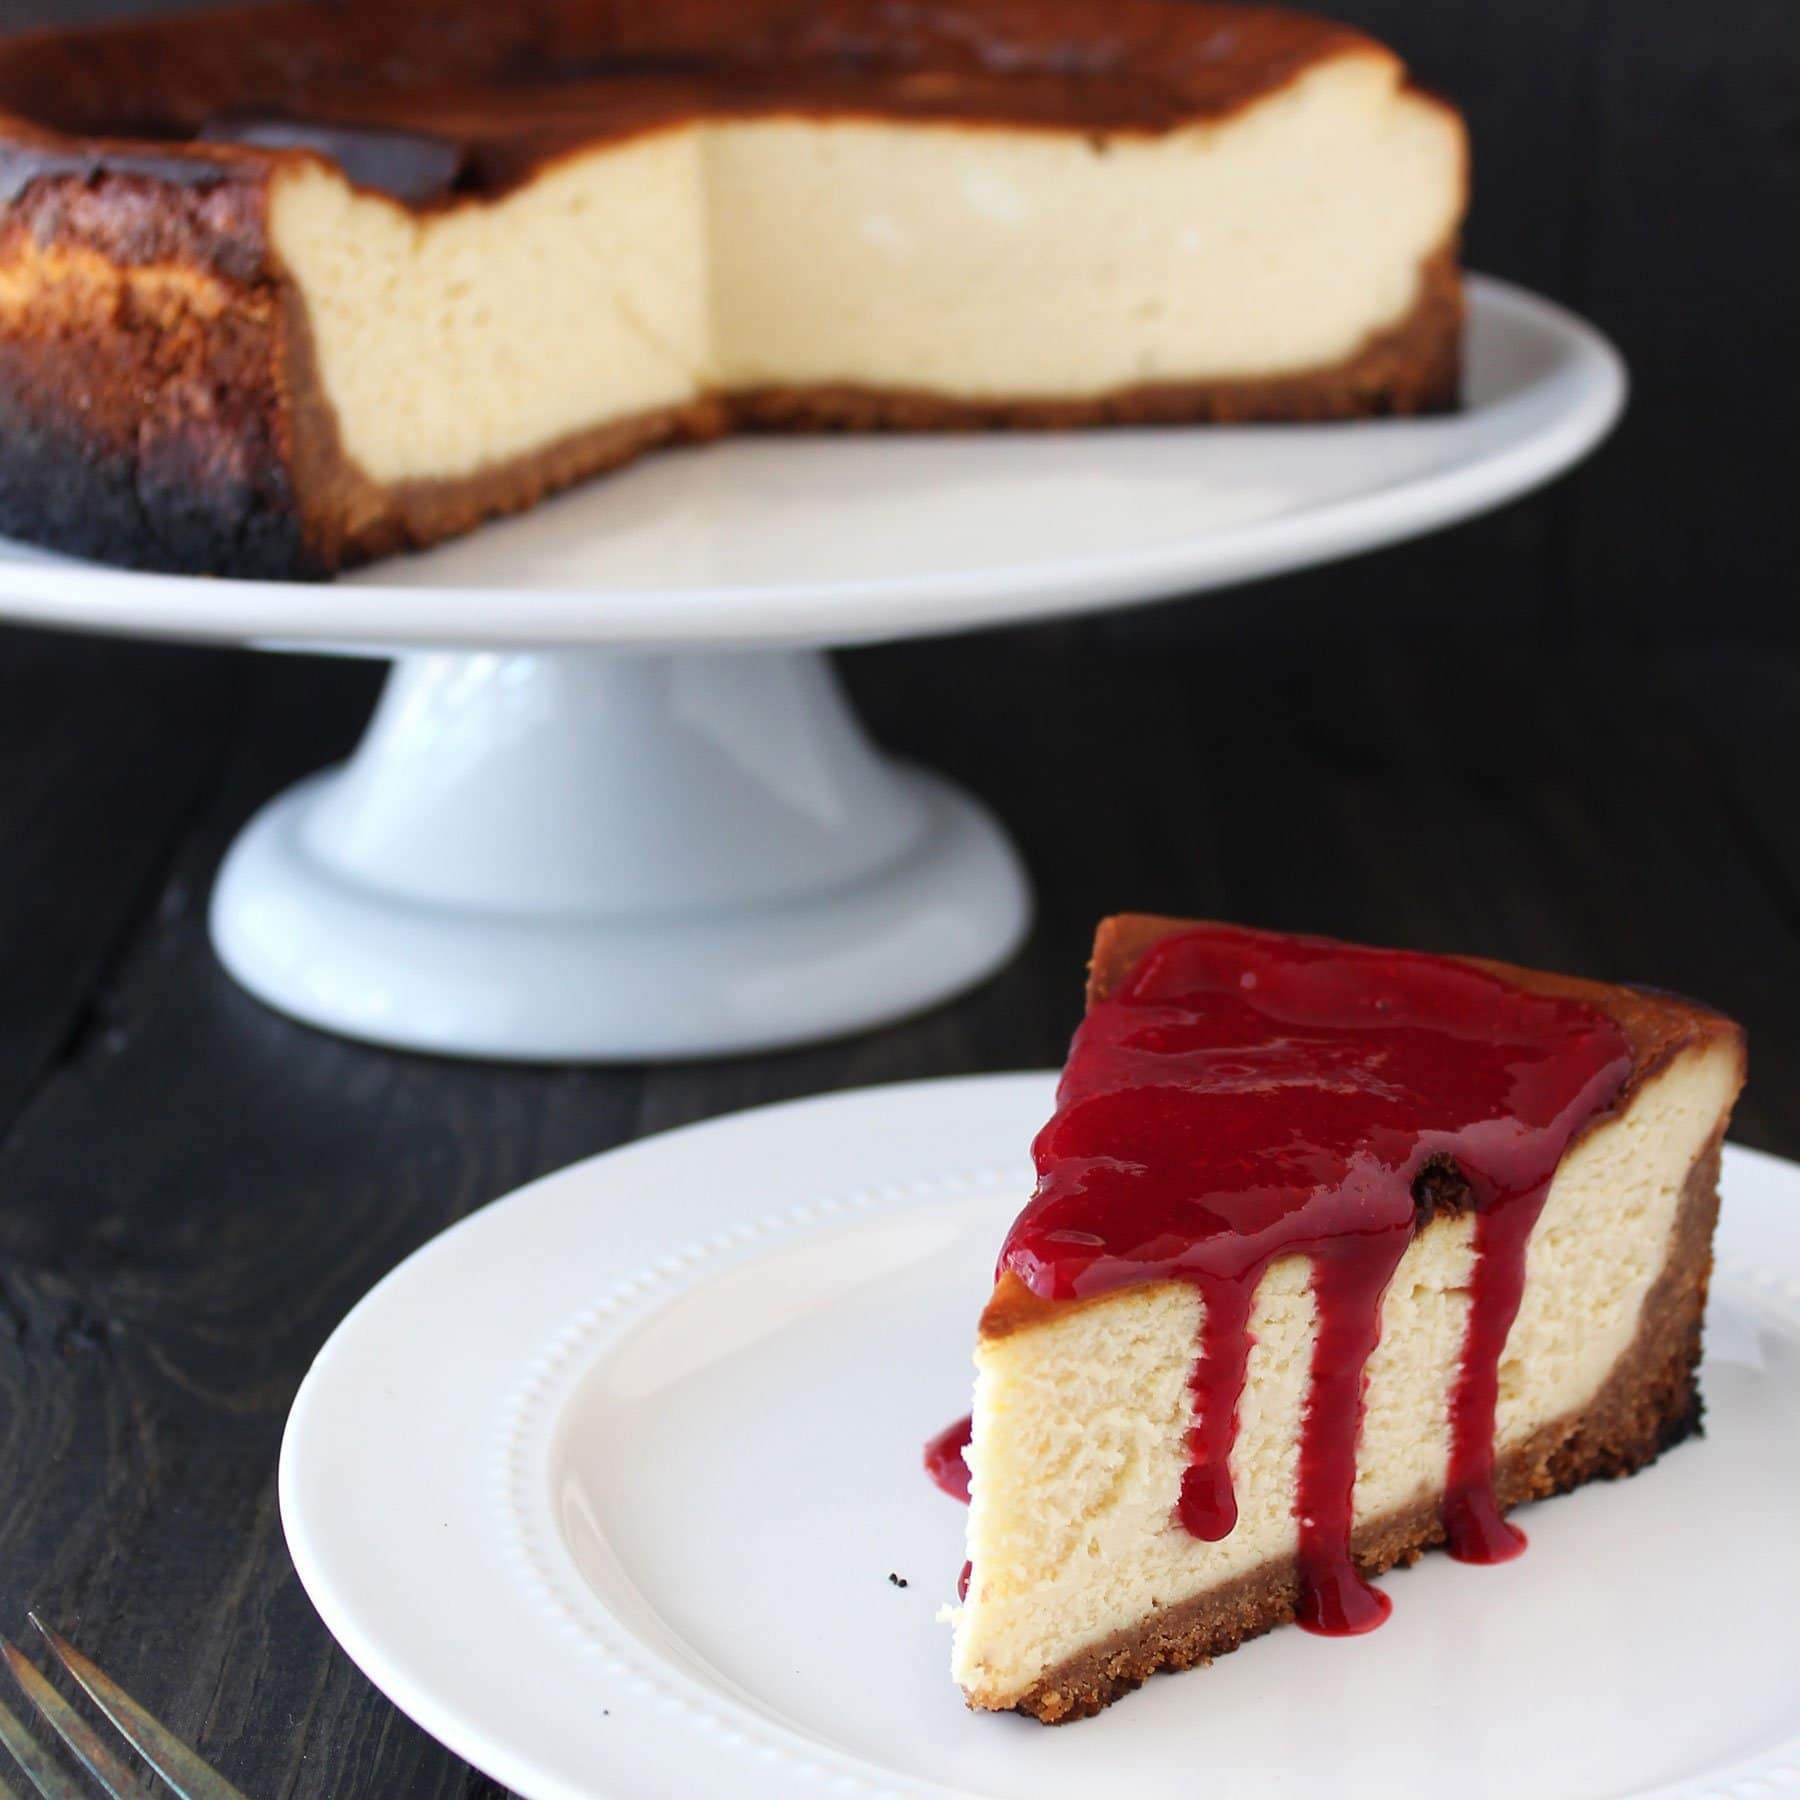 Cheesecake-02-Square